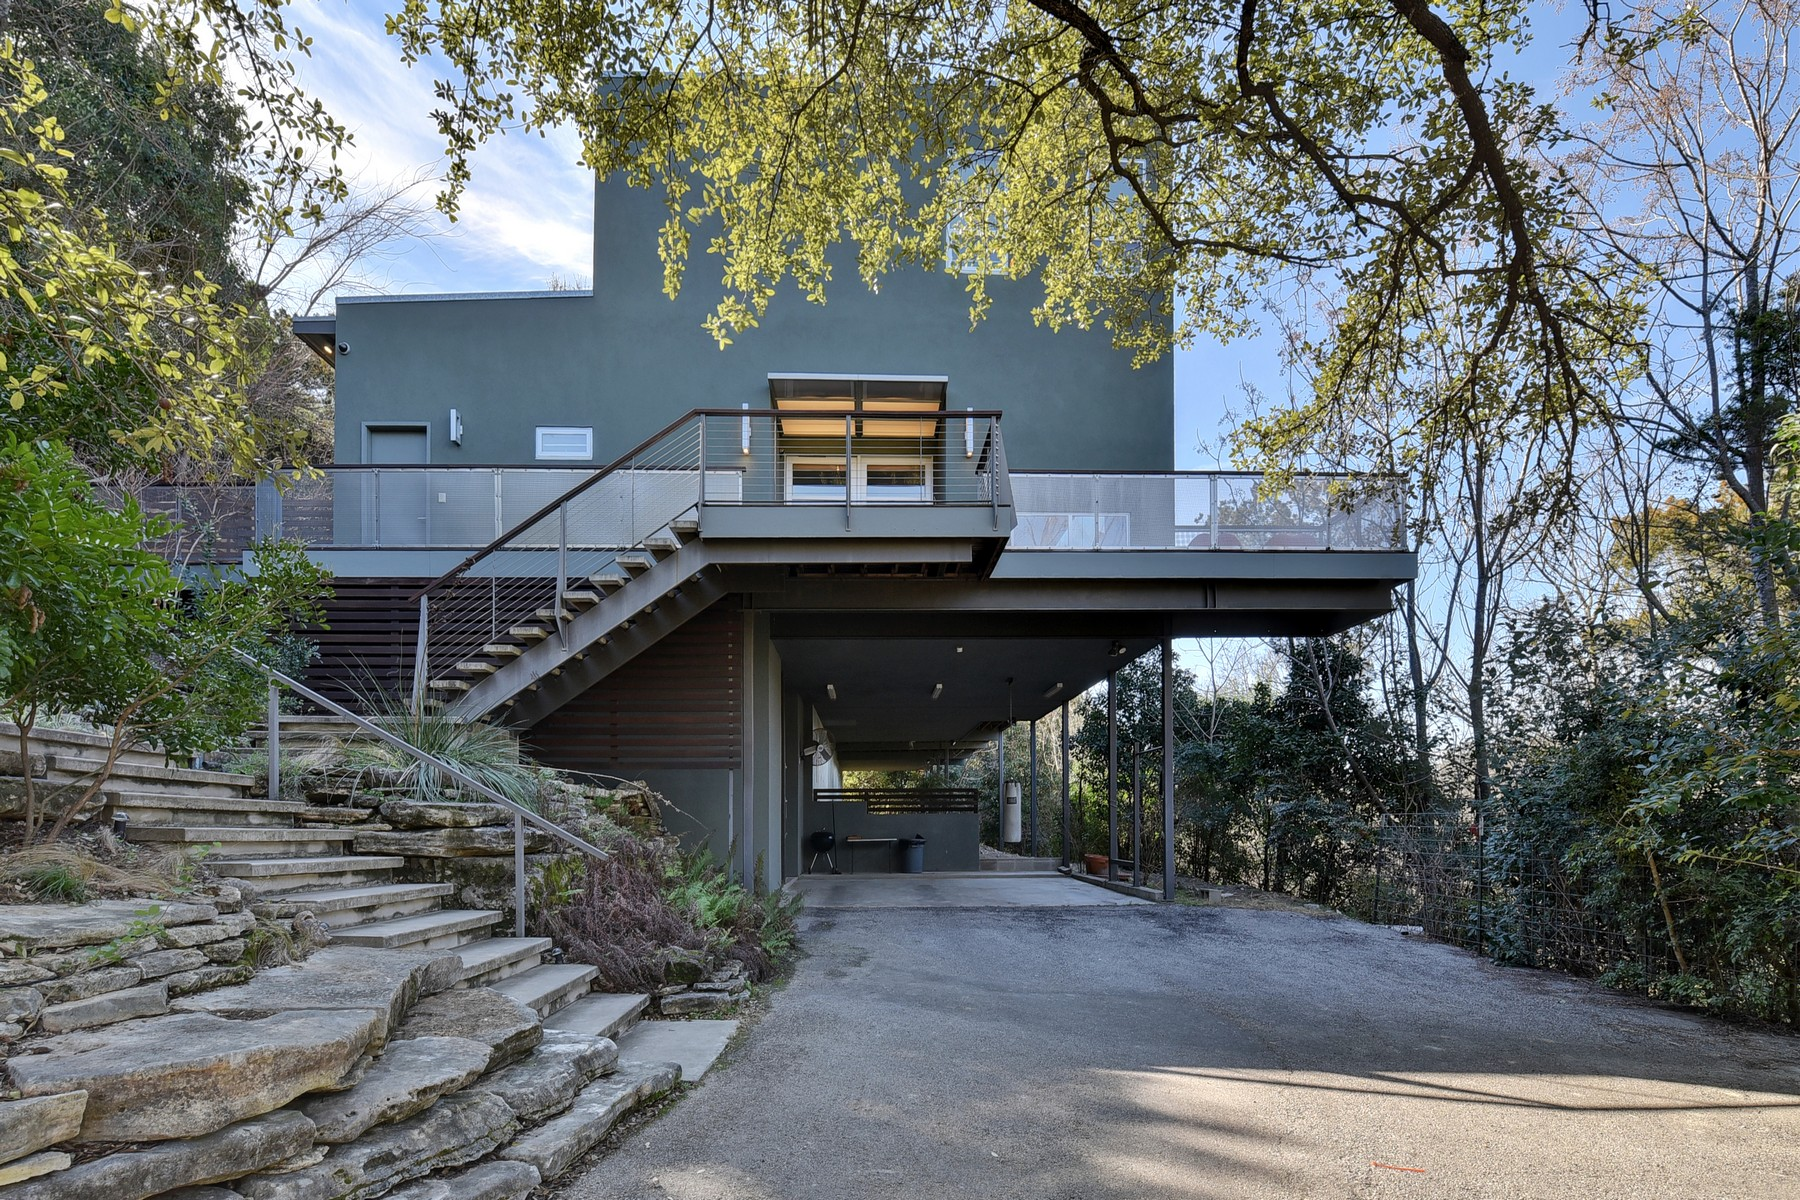 Single Family Home for Sale at Contemporary, Tranquil Oasis in Northwest Hills 3611 Hillbrook Dr Austin, Texas 78731 United States